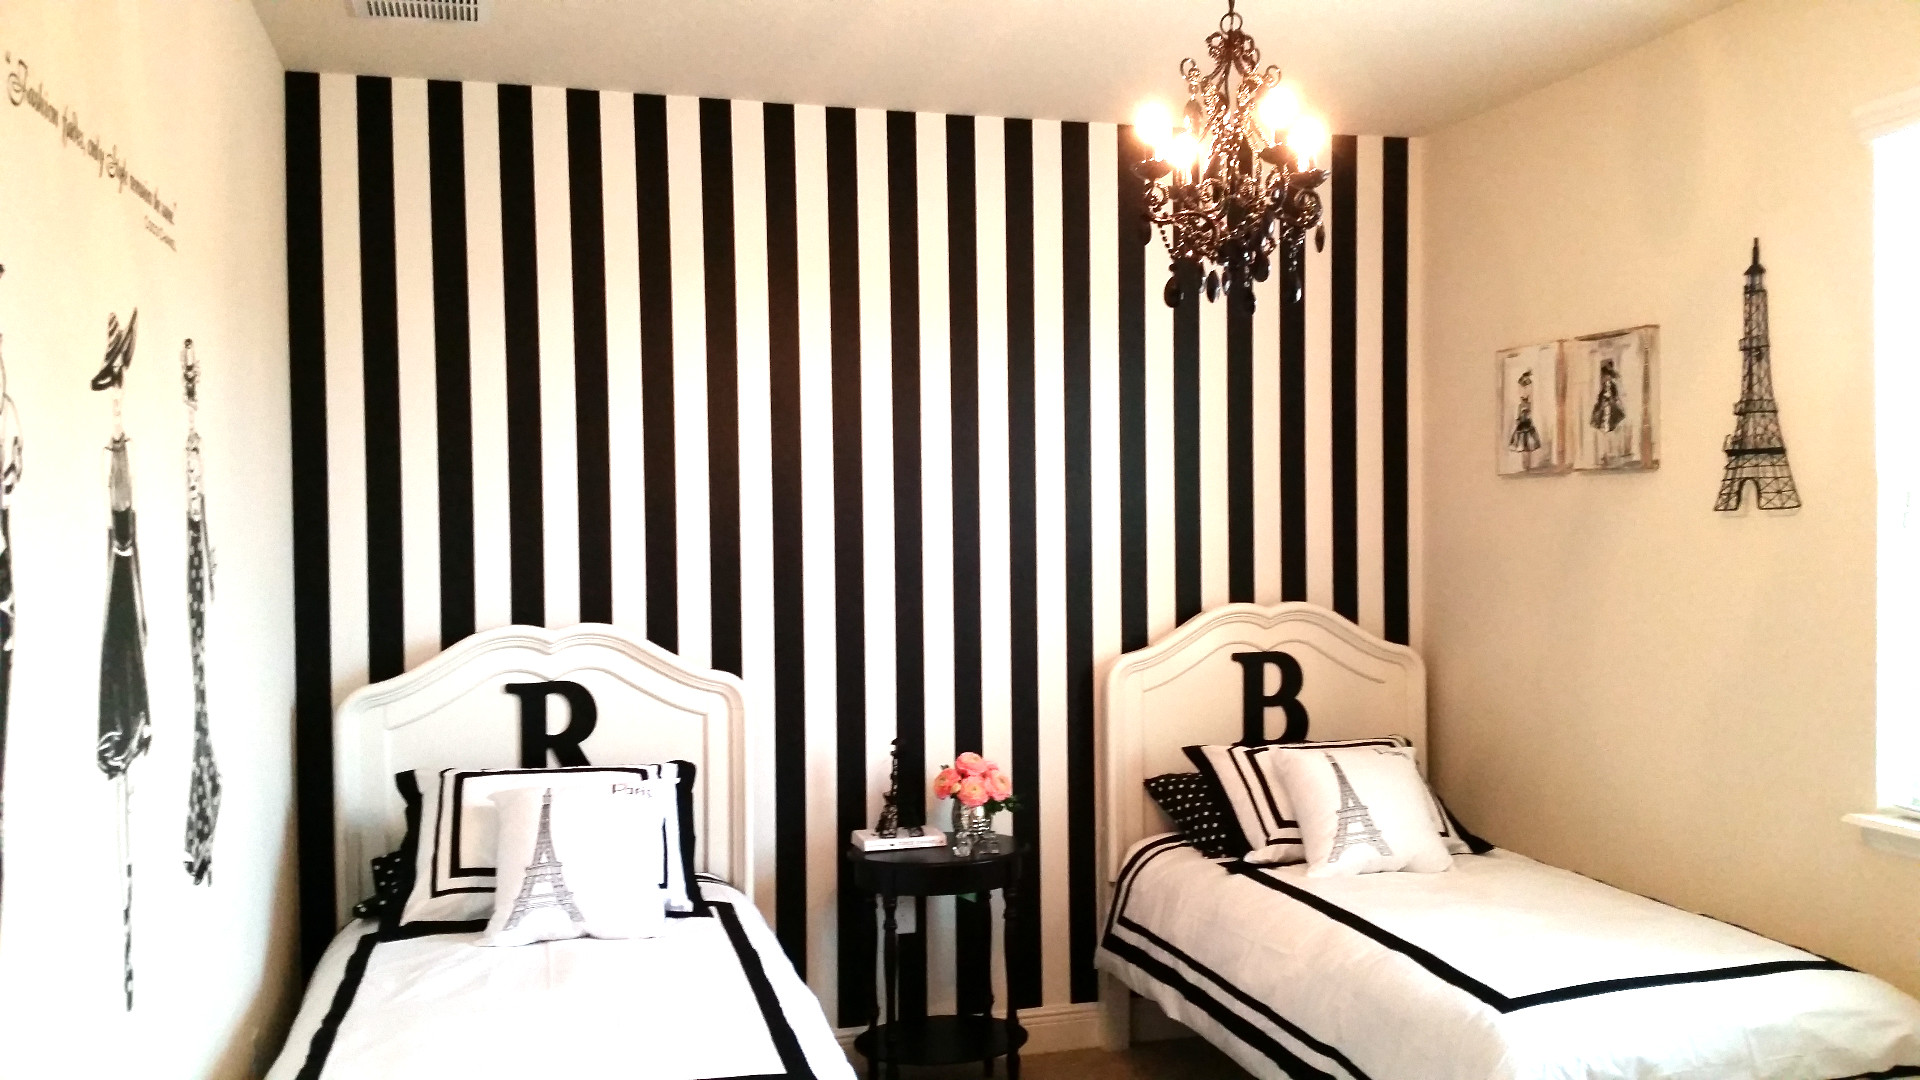 1920x1080 double beds with Paris Themed Bedding before the white and black stripped  wall plus black chandelier